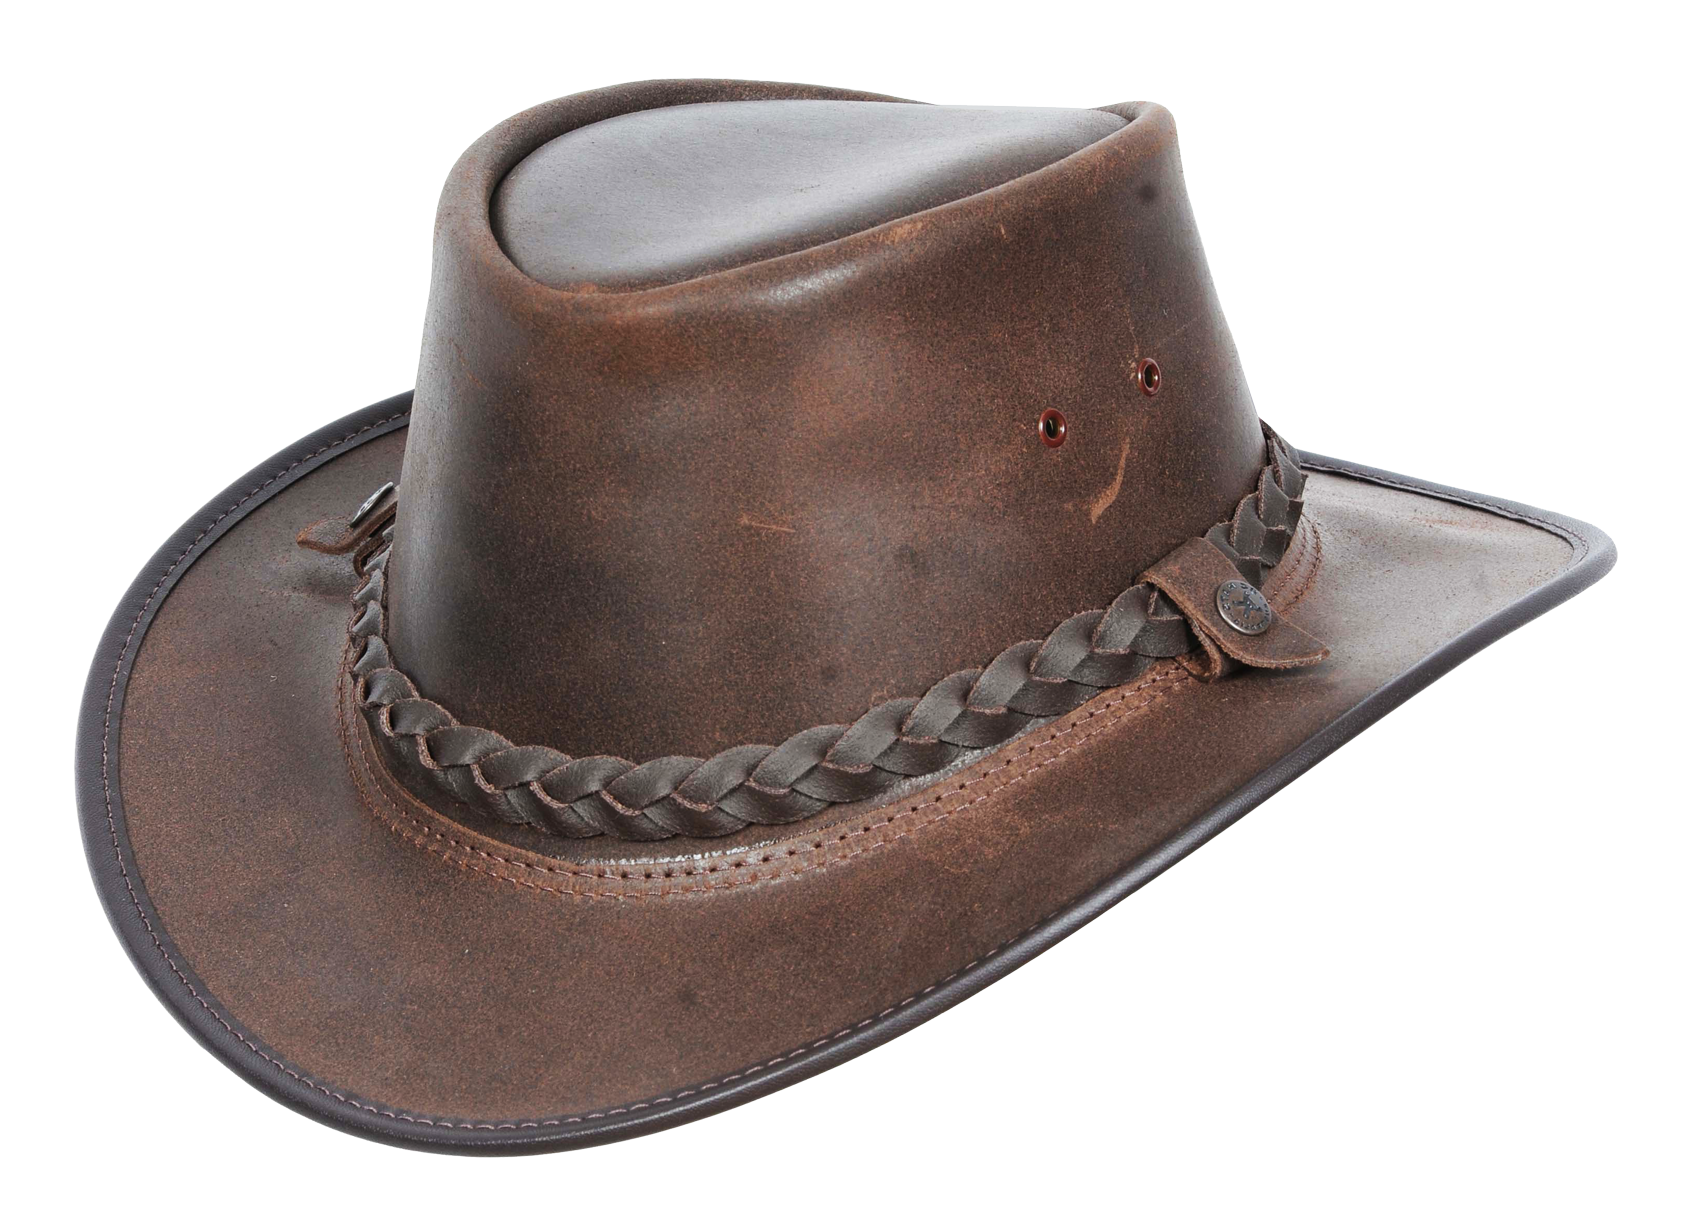 Cowboy hat png transparent. Free images only quality